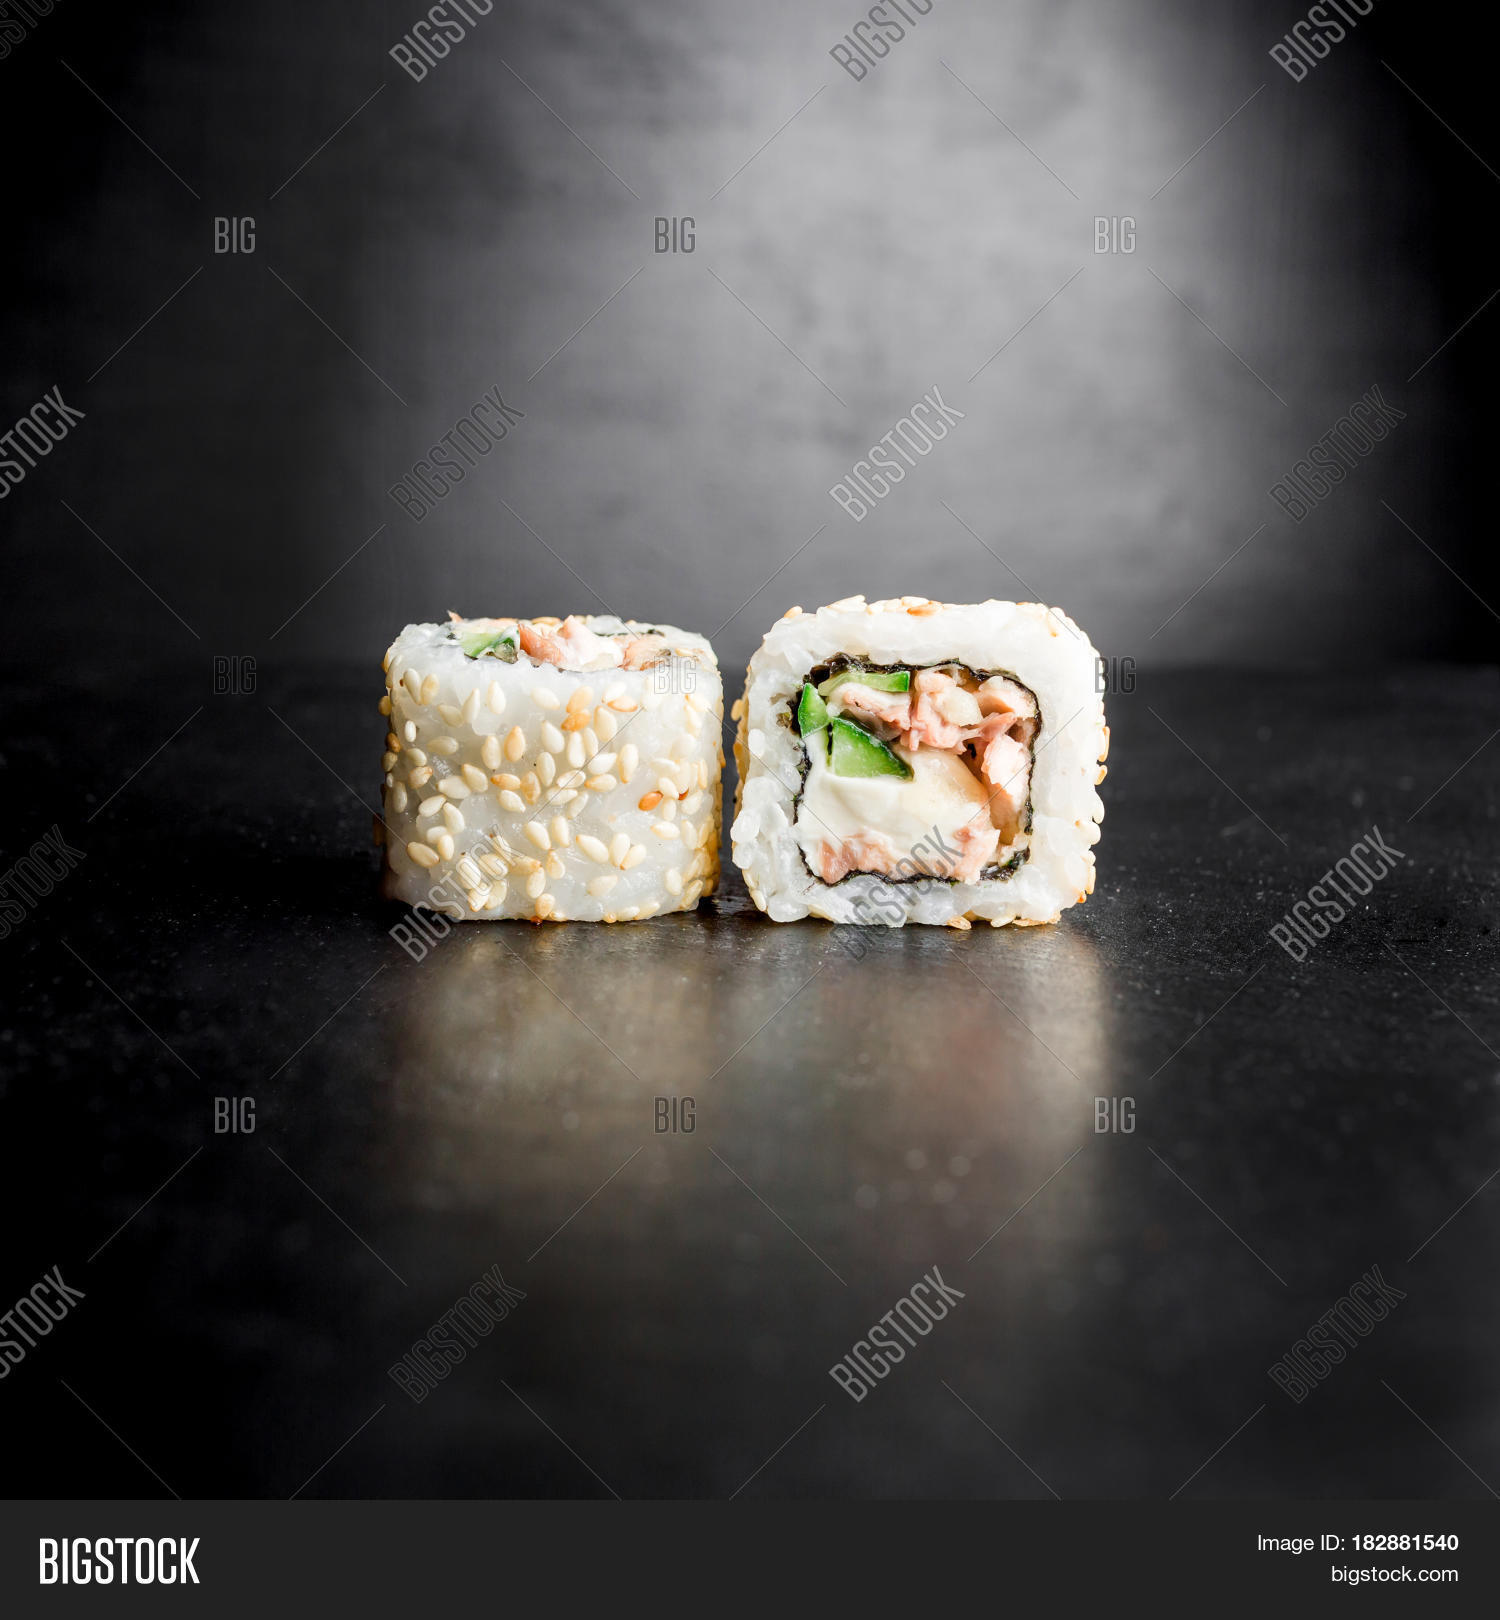 Sushi Rolls Isolated Image Photo Free Trial Bigstock